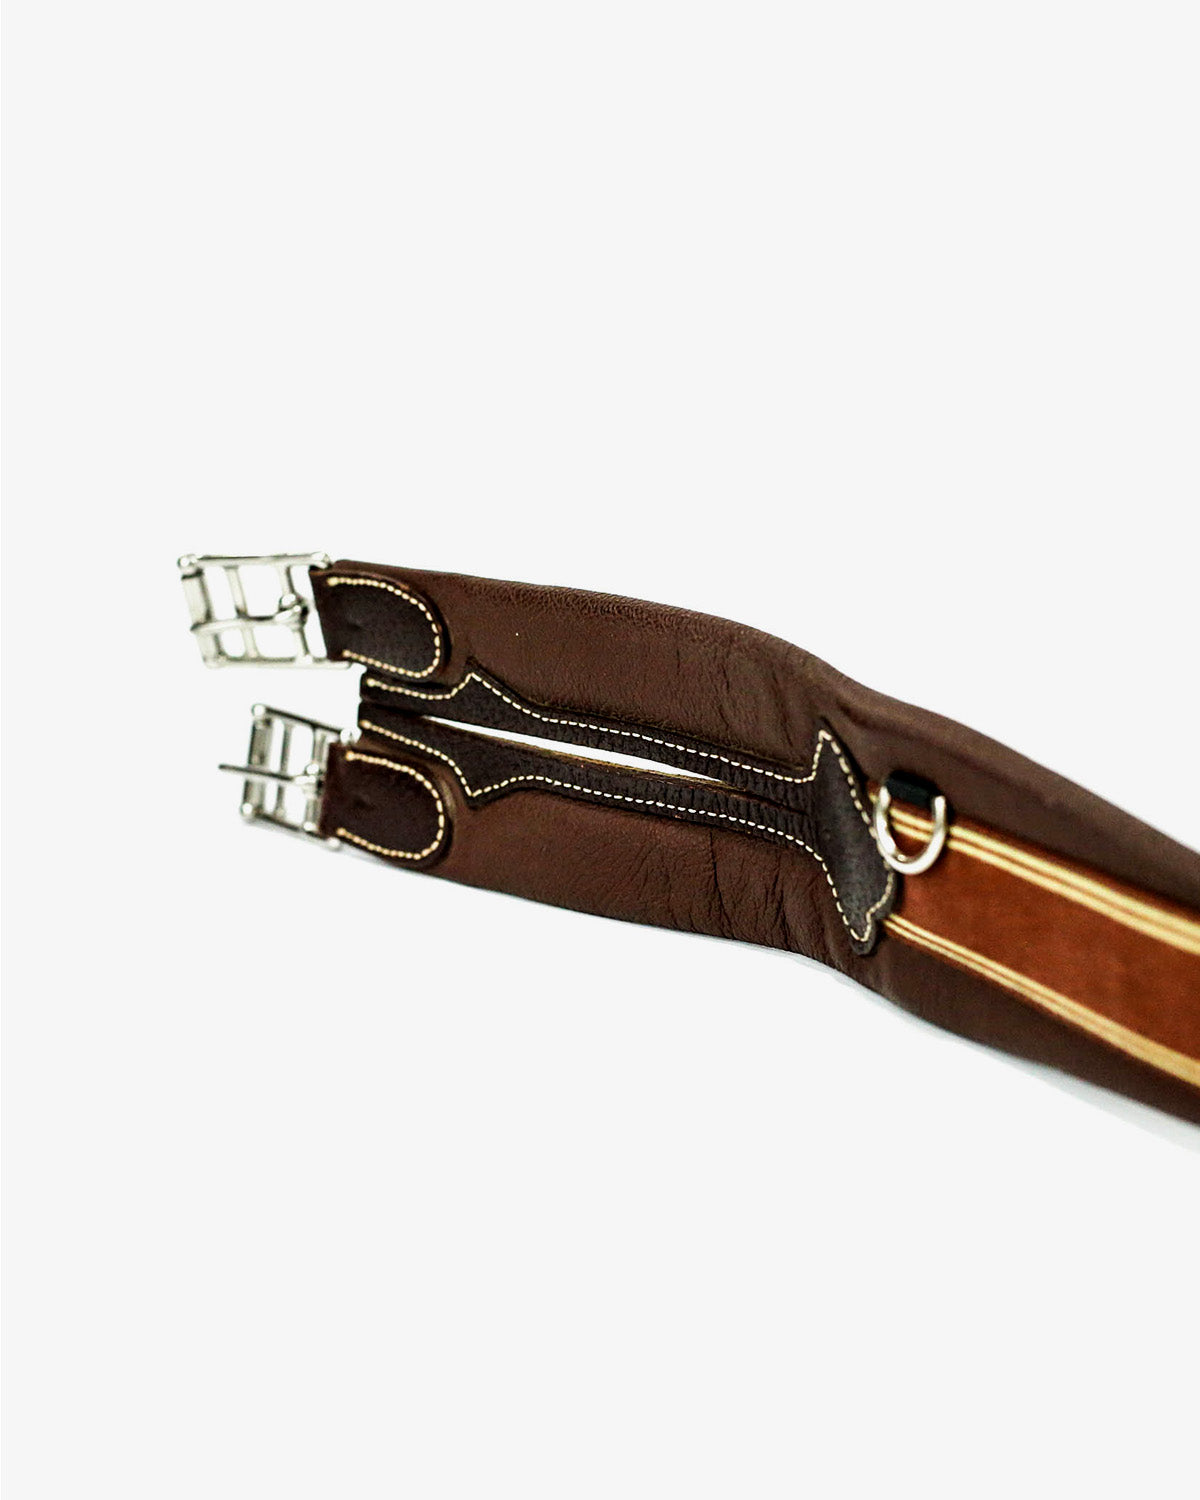 A5 Elastic Leather Girth